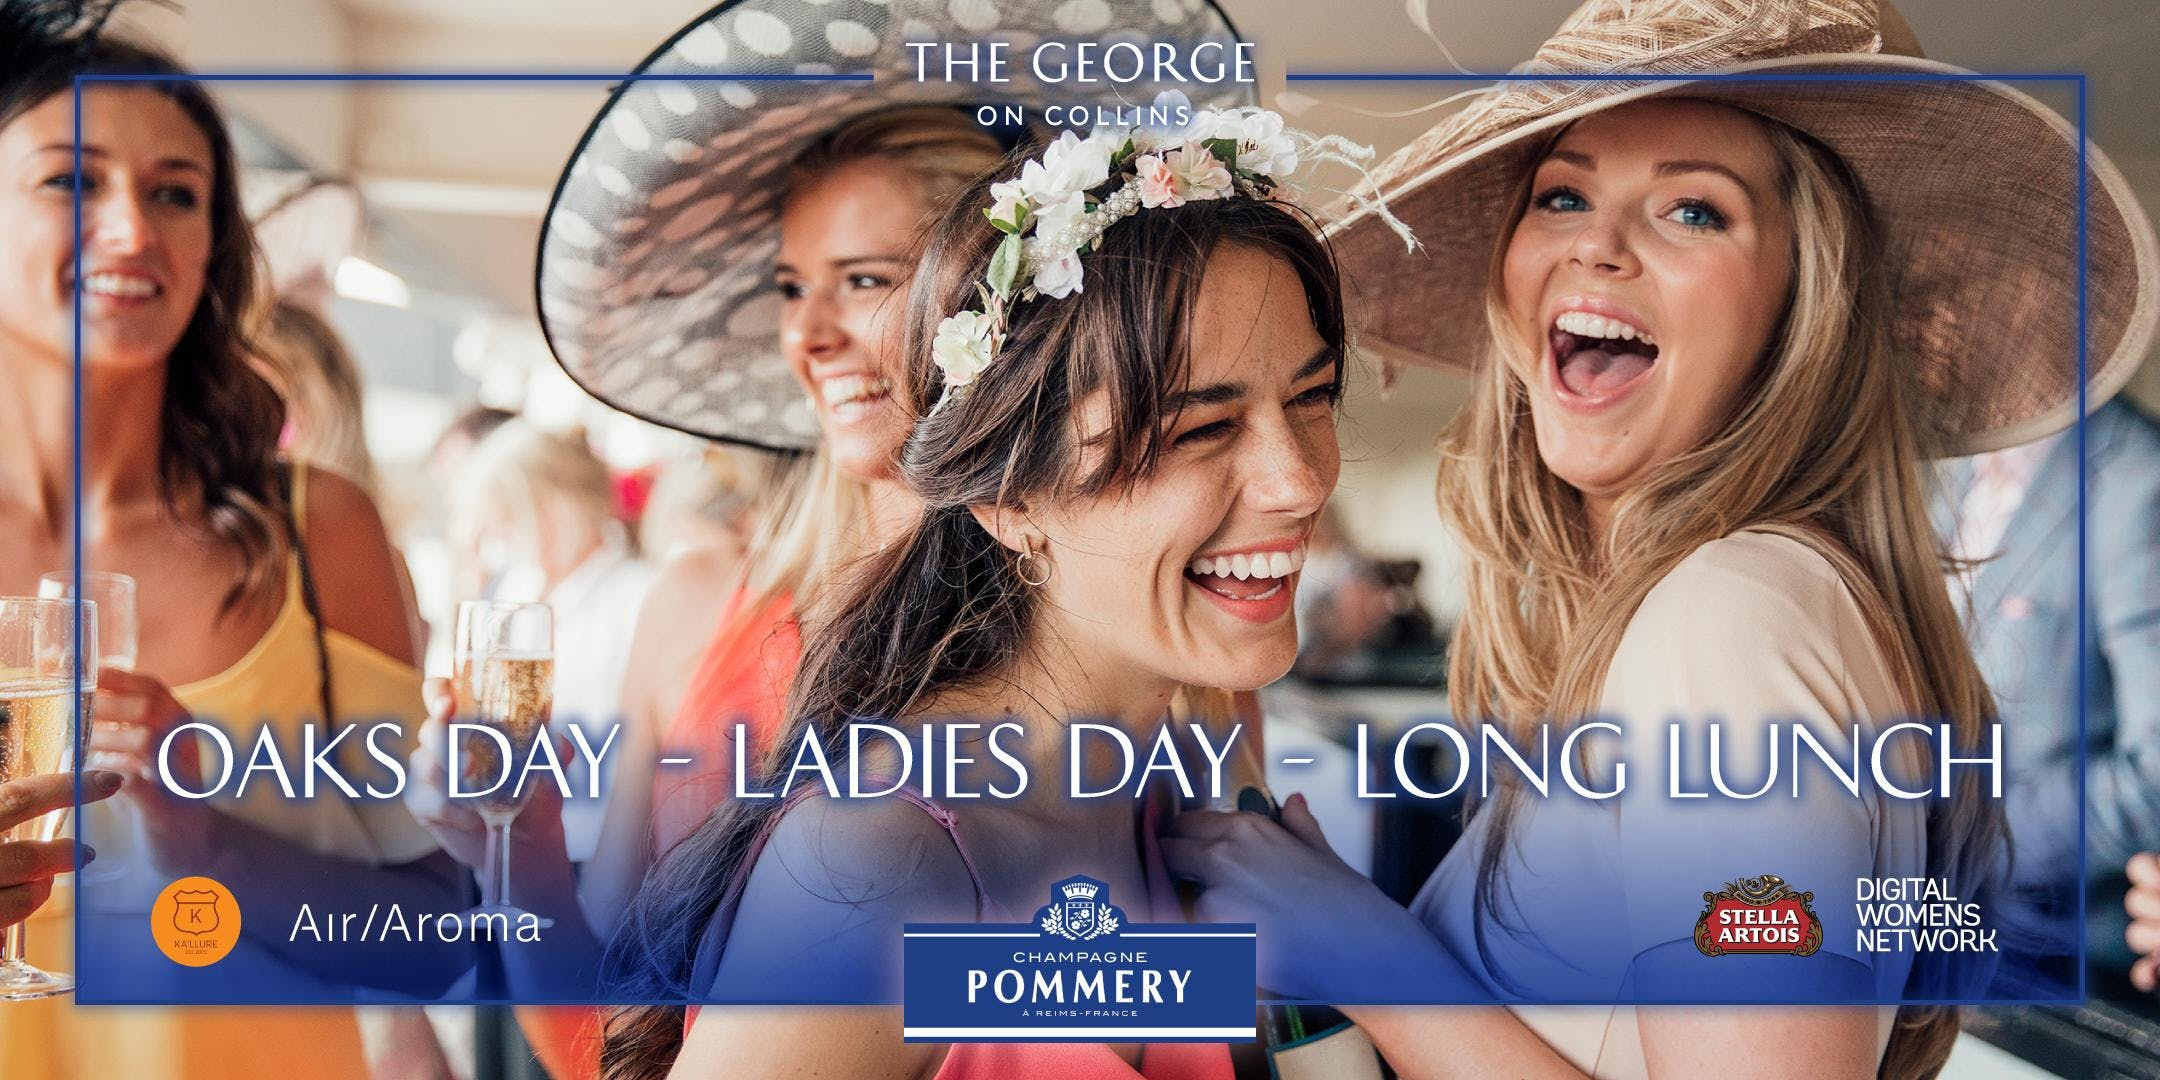 Oaks Day at The George on Collins